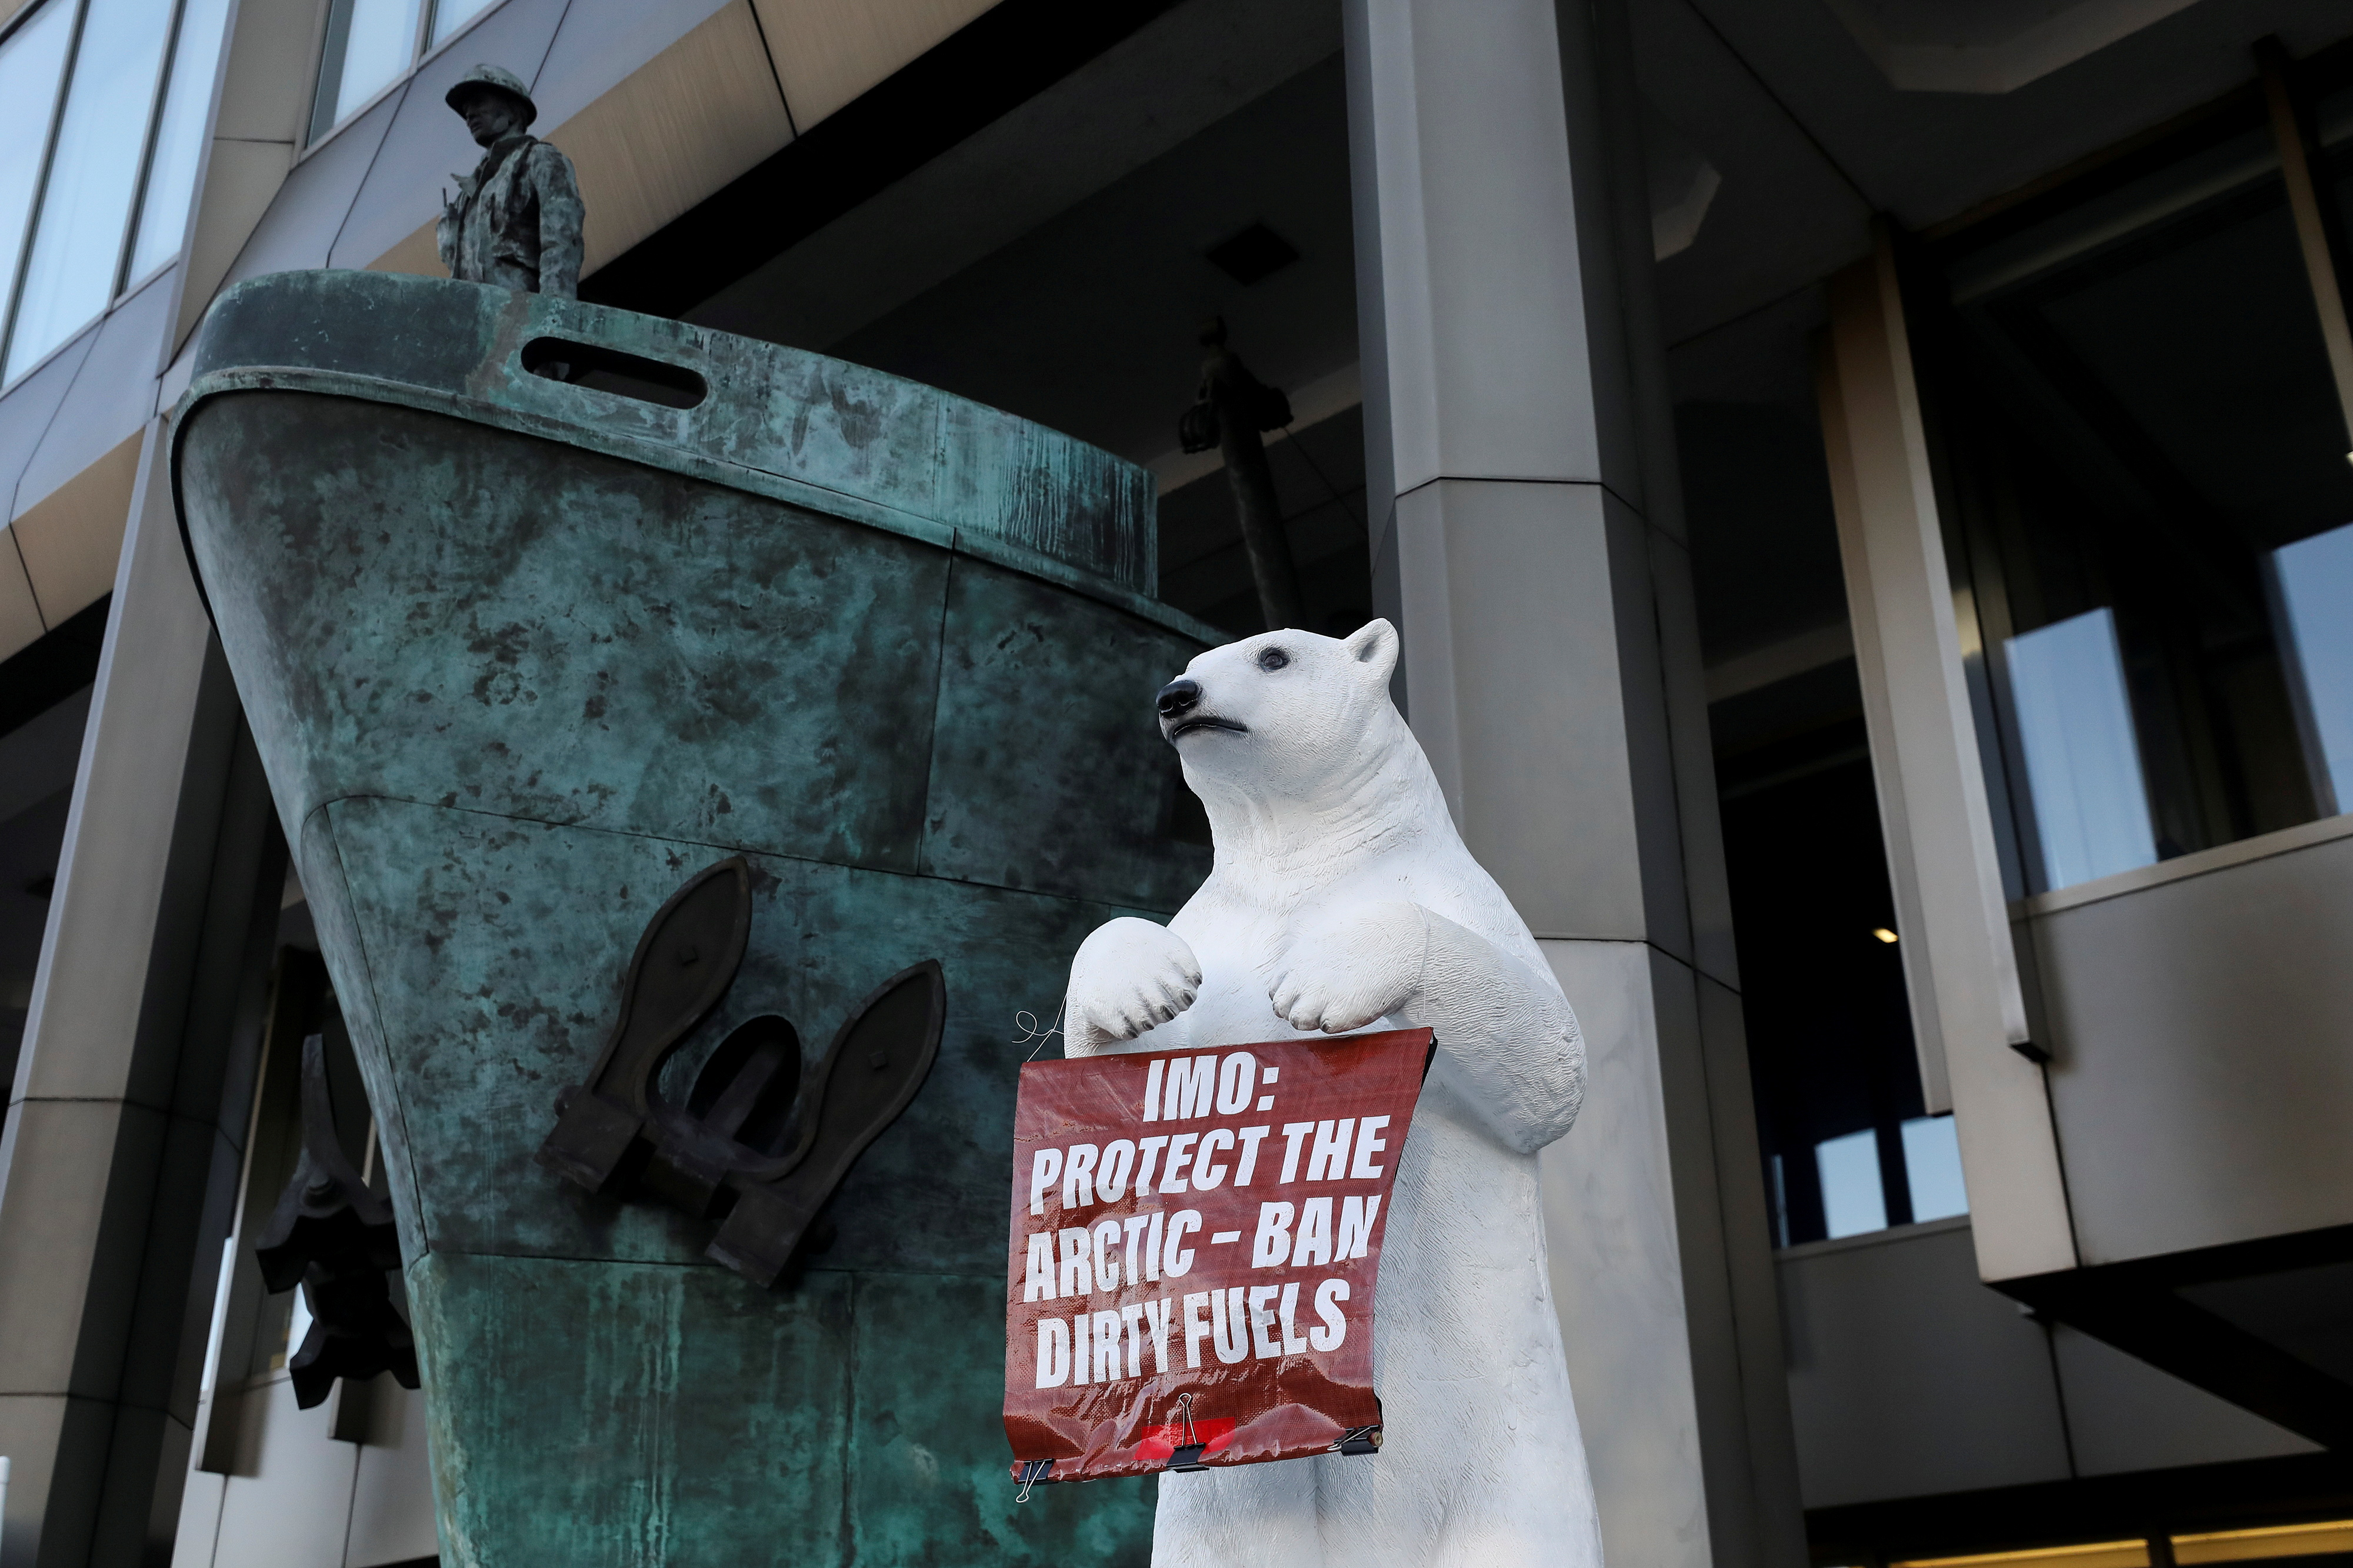 Extinction Rebellion and Ecohustler protest against the shipping industry outside the International Maritime Organization in London, Britain February 17, 2020. REUTERS/Simon Dawson